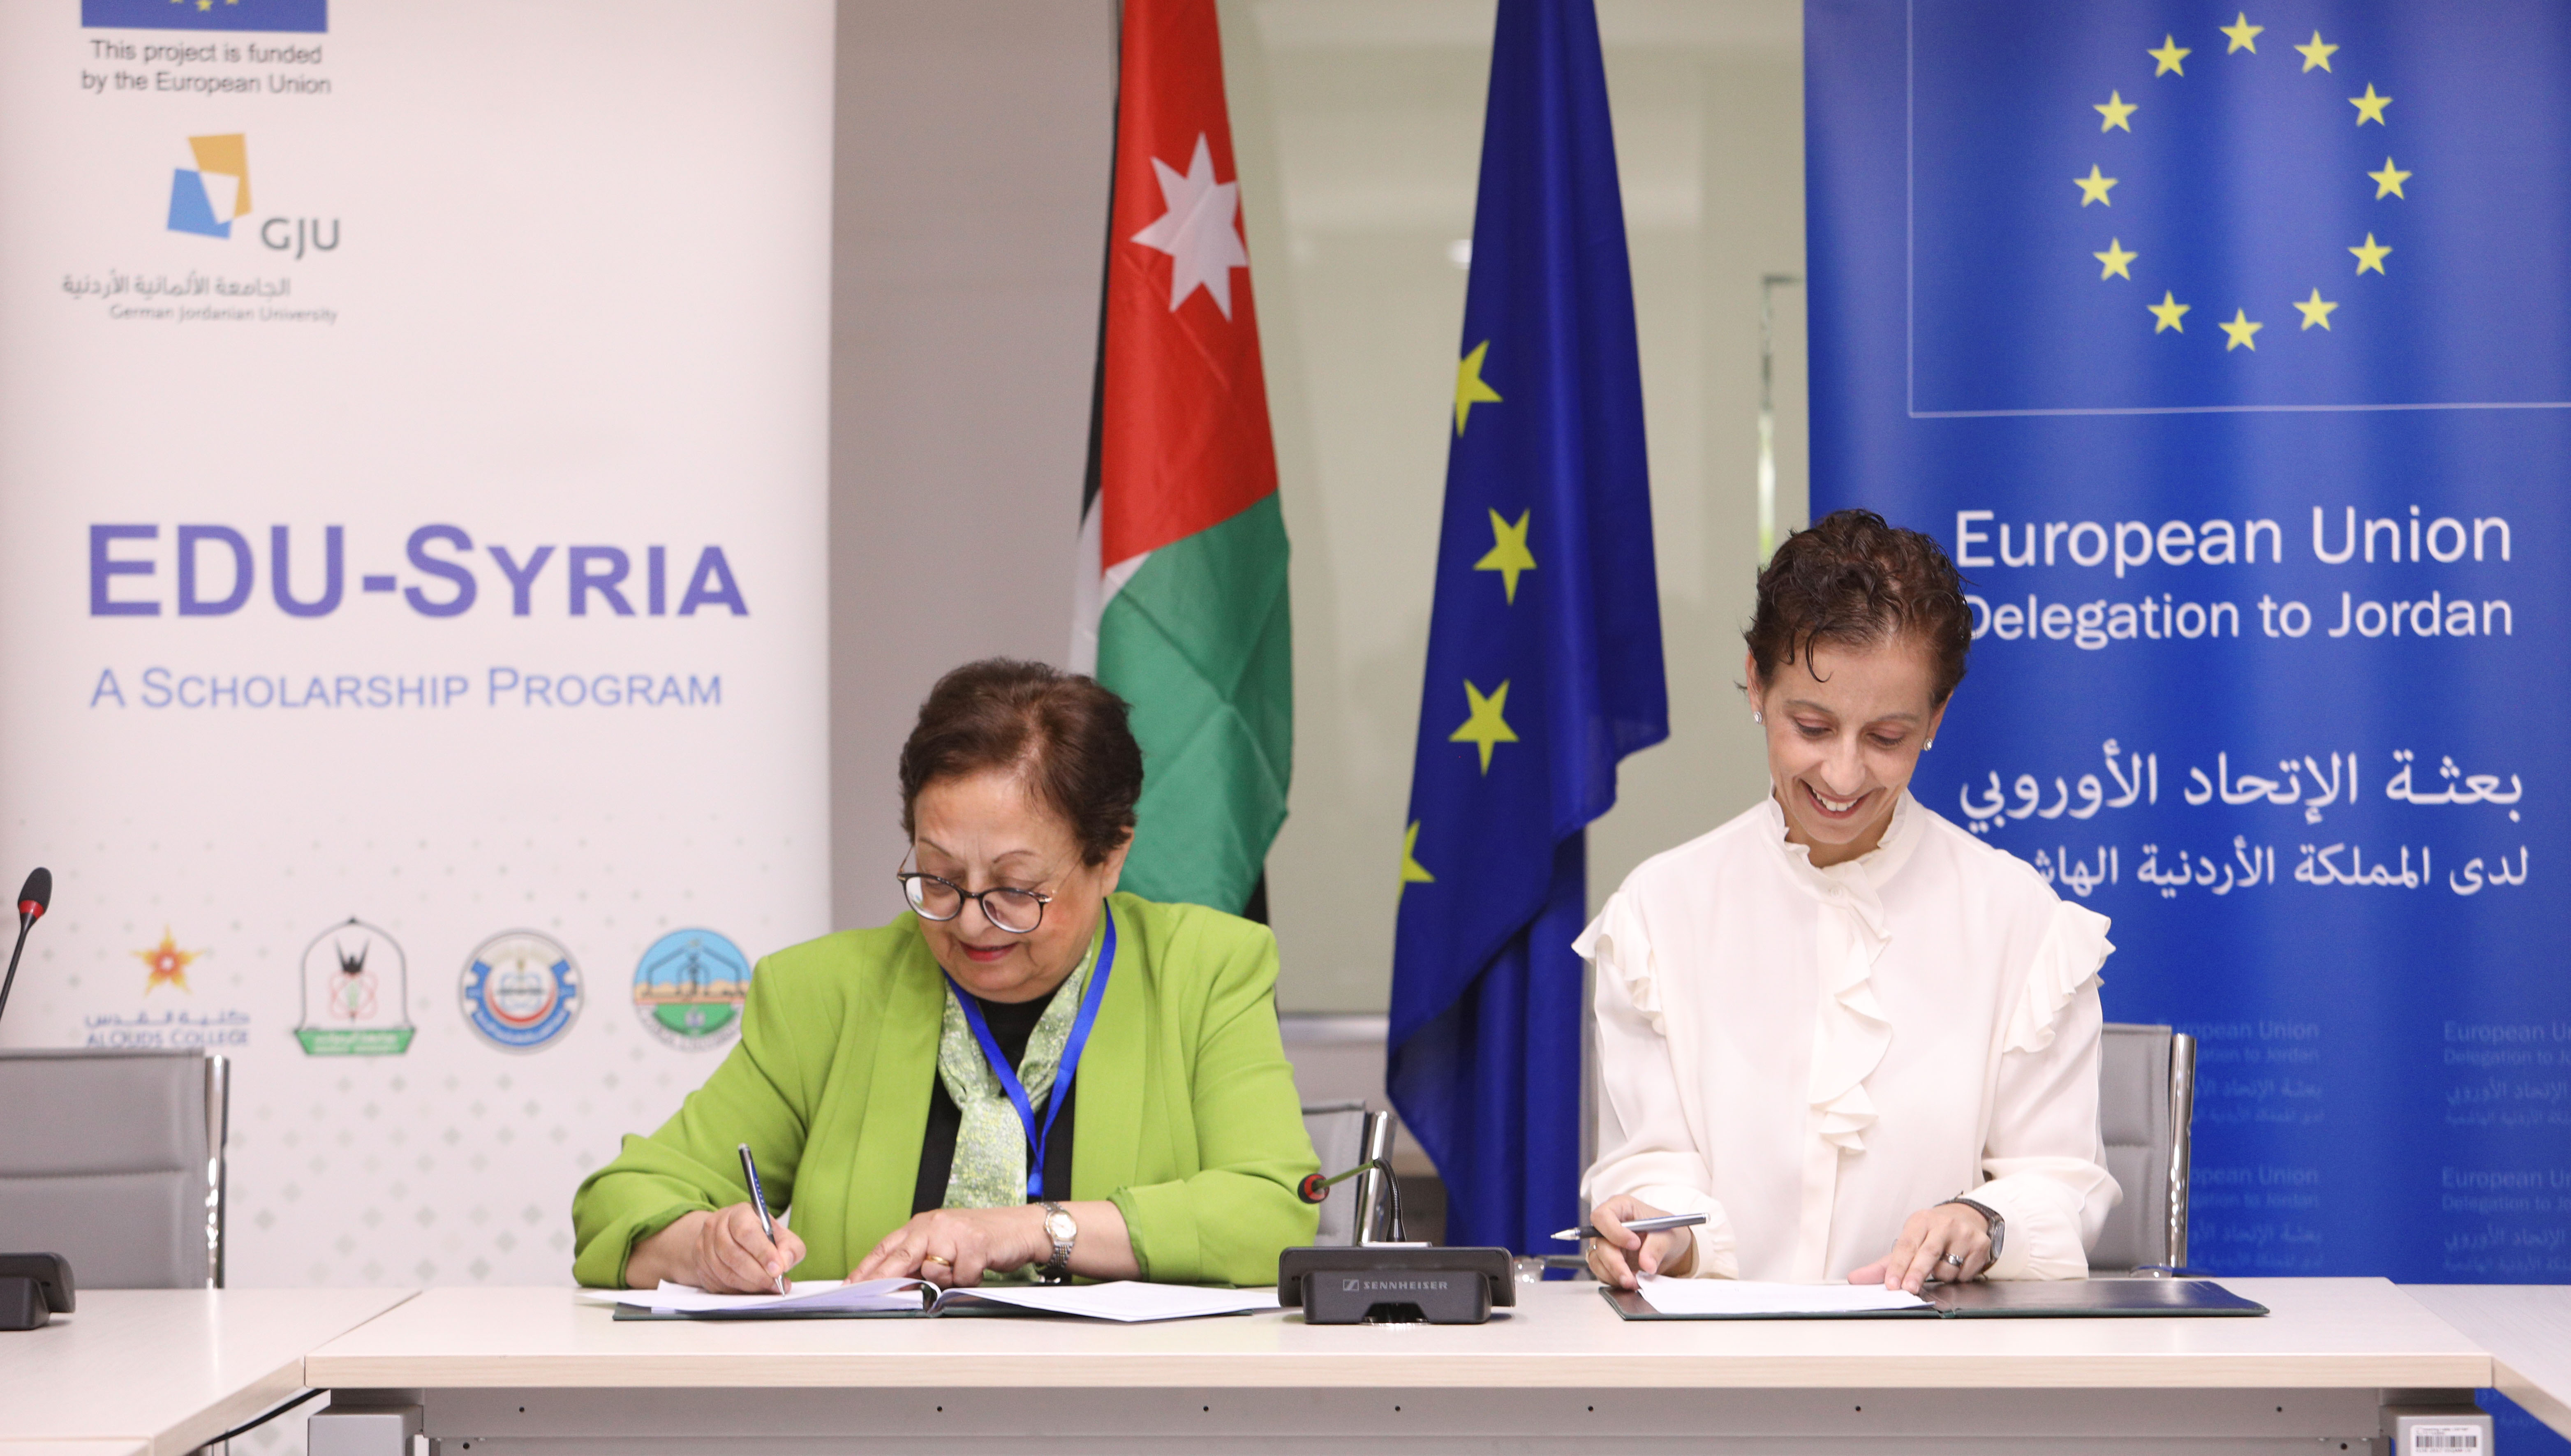 EU signs €15 million grant to support Syrian refugees and vulnerable Jordanians access to higher education